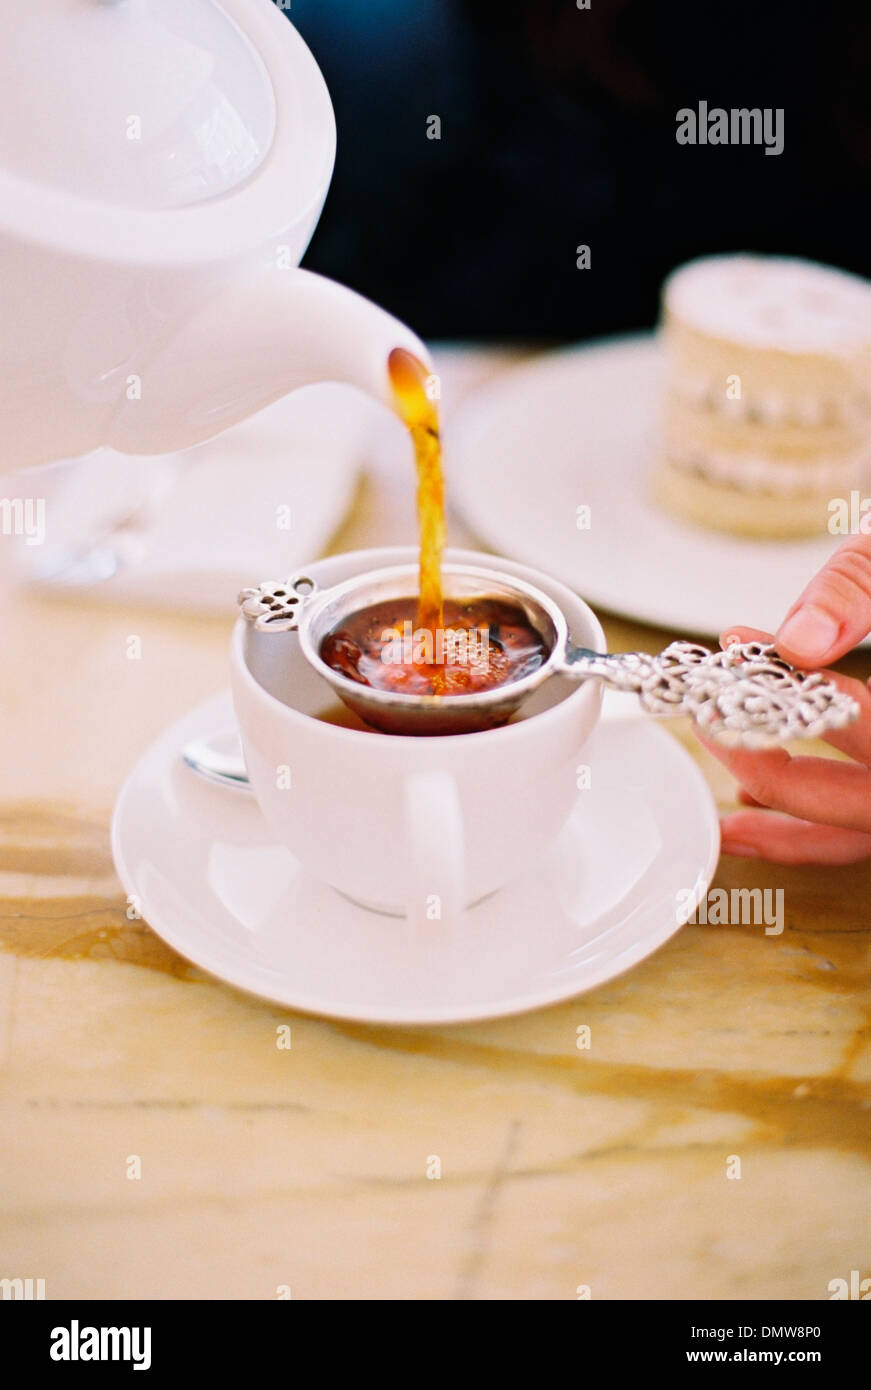 A person pouring a cup of tea using a strainer. White china. Elegant afternoon tea. Stock Photo